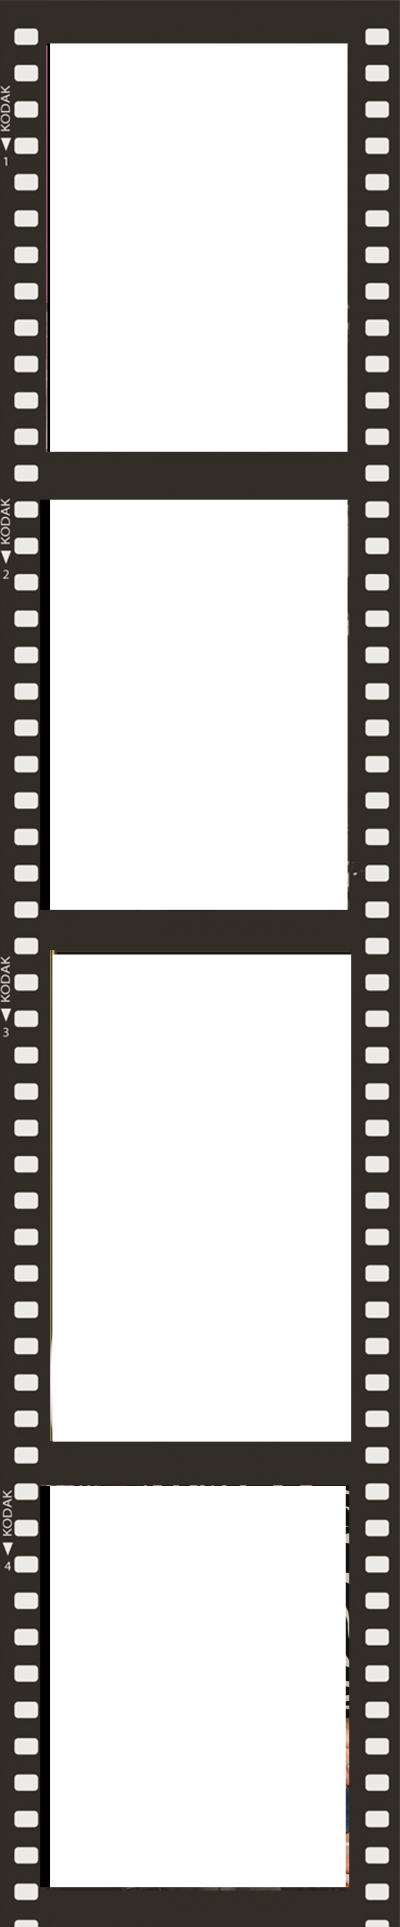 Filmstrip Movie Transparent Image